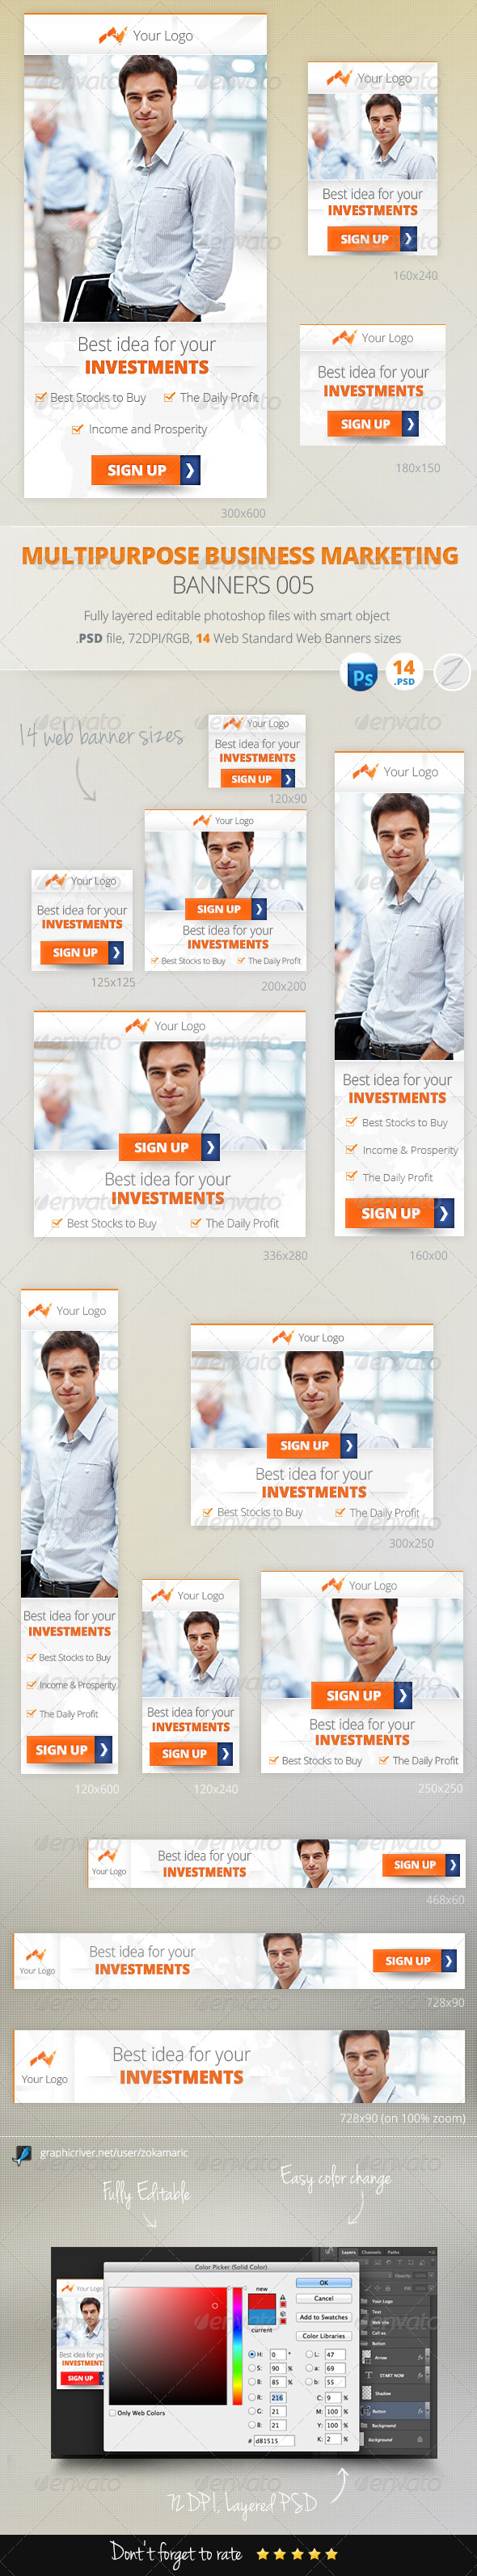 GraphicRiver Multipurpose Business Marketing Banners 005 5909404